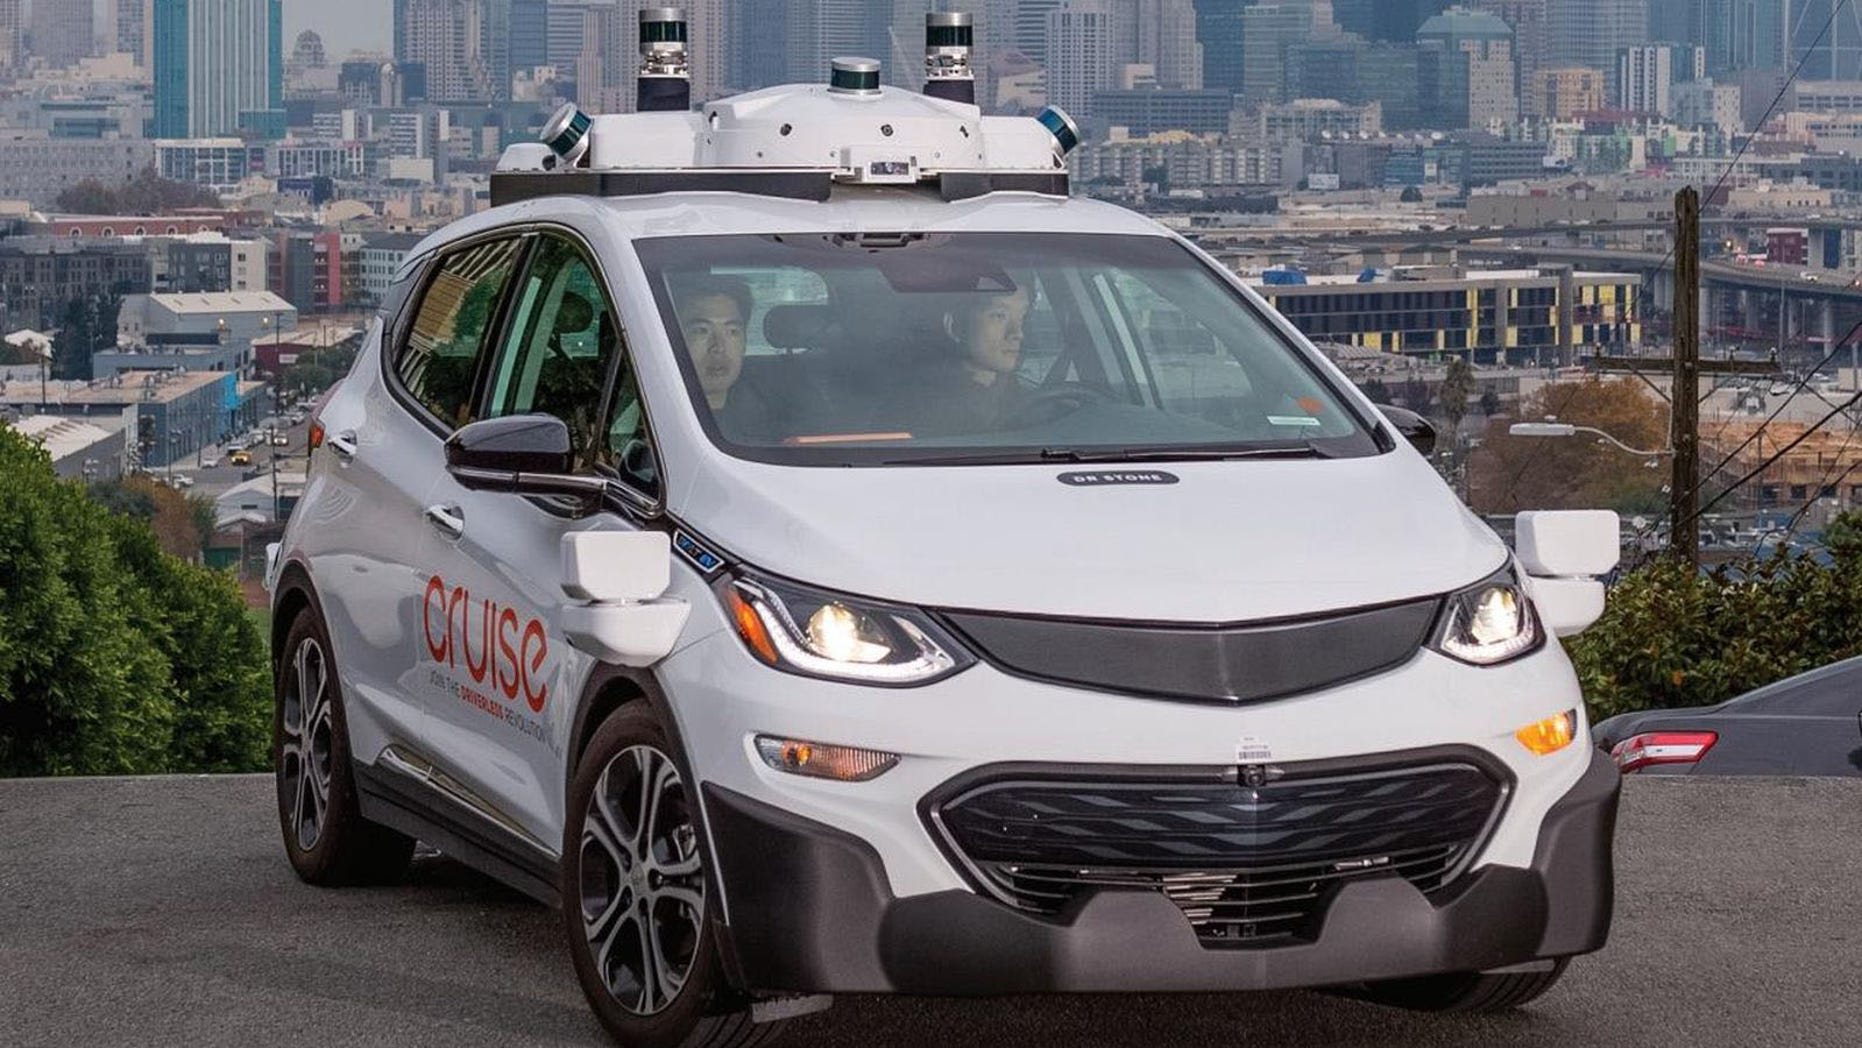 GM Cruise vehicle is testing dozens of autonomous vehicles in San Francisco.